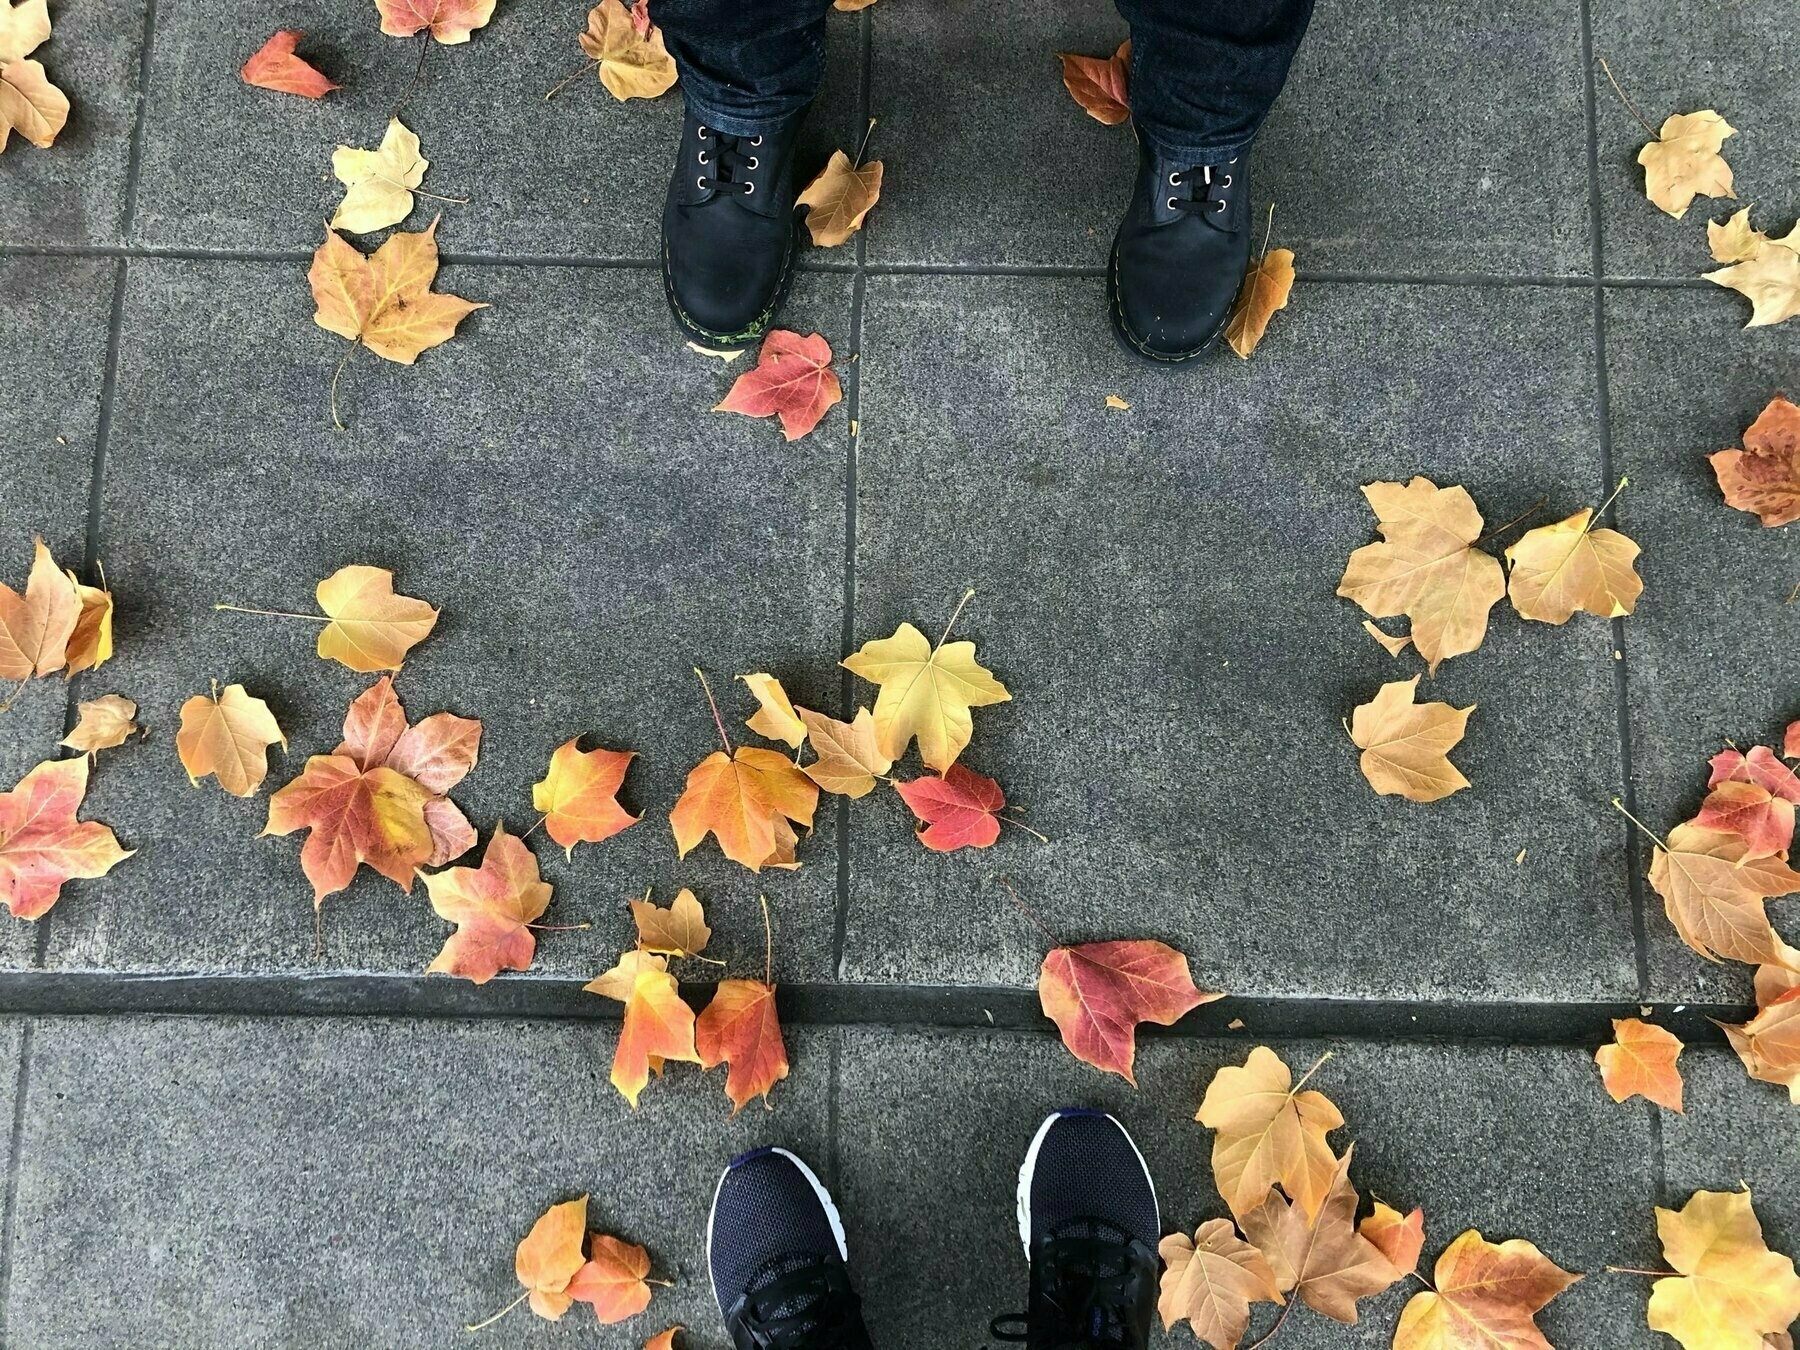 Orangey-red leaves scattered across a pale gray sidewalk. Cheri & P's toes peep into the photo.